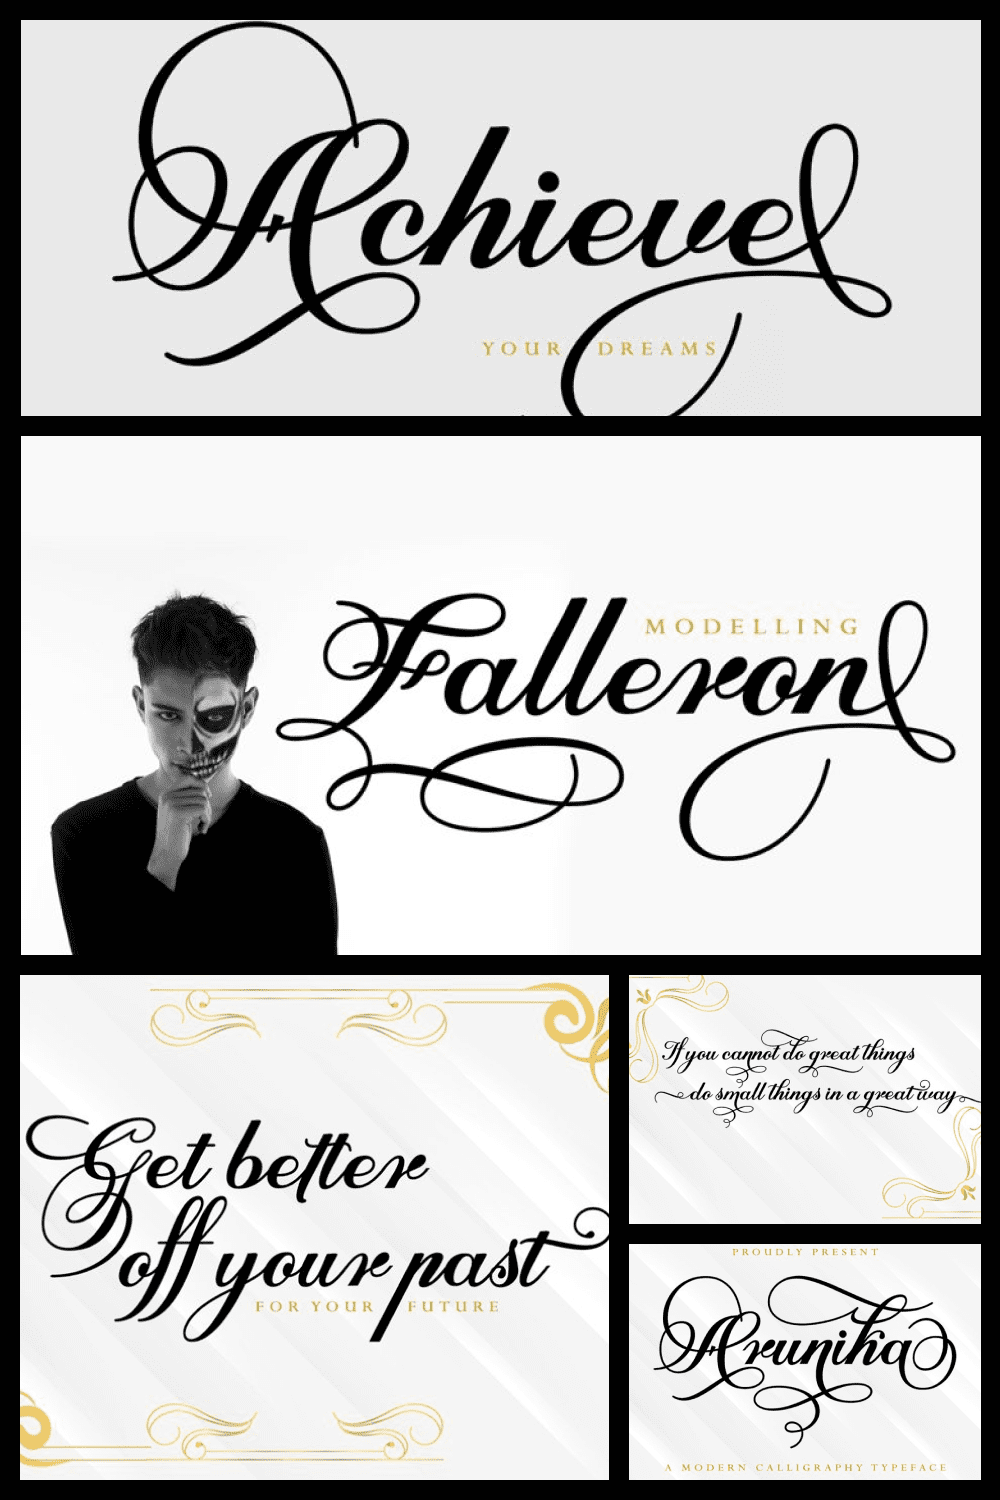 This is an elegant and flowing handwritten font.